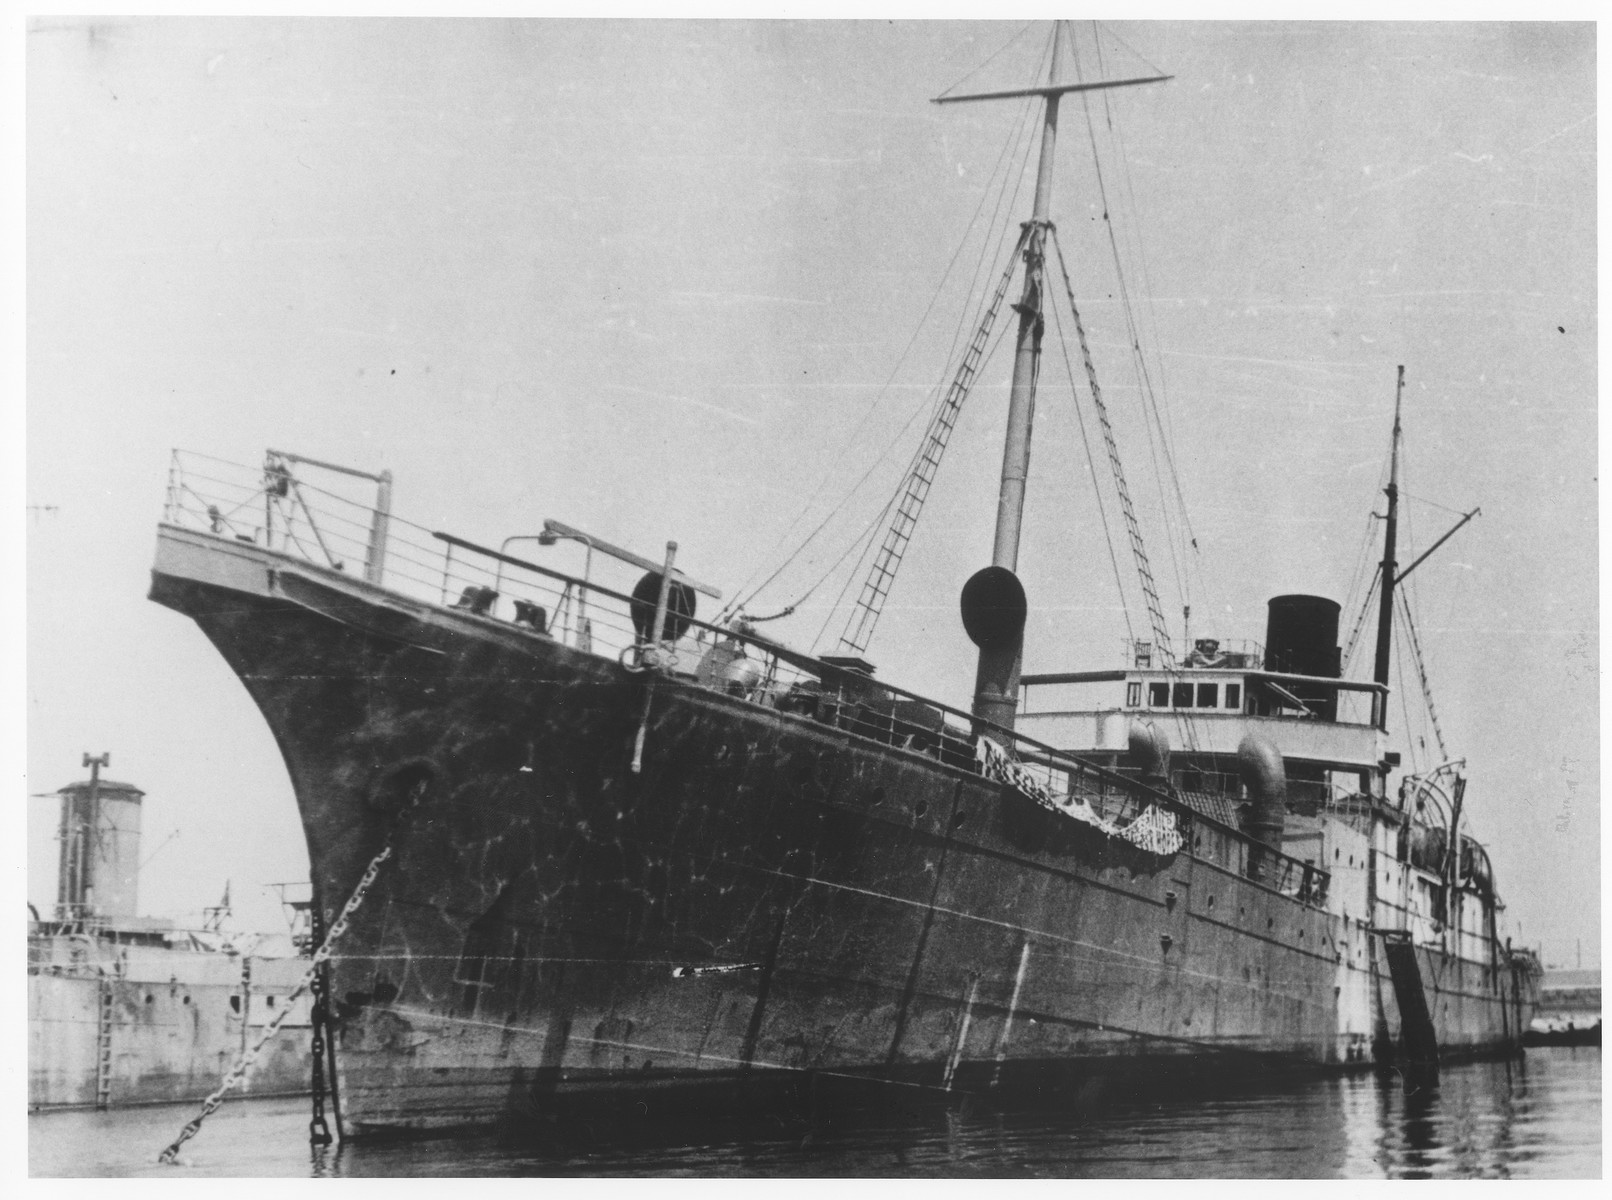 View of the illegal immigrant ship, the Theodor Herzl.